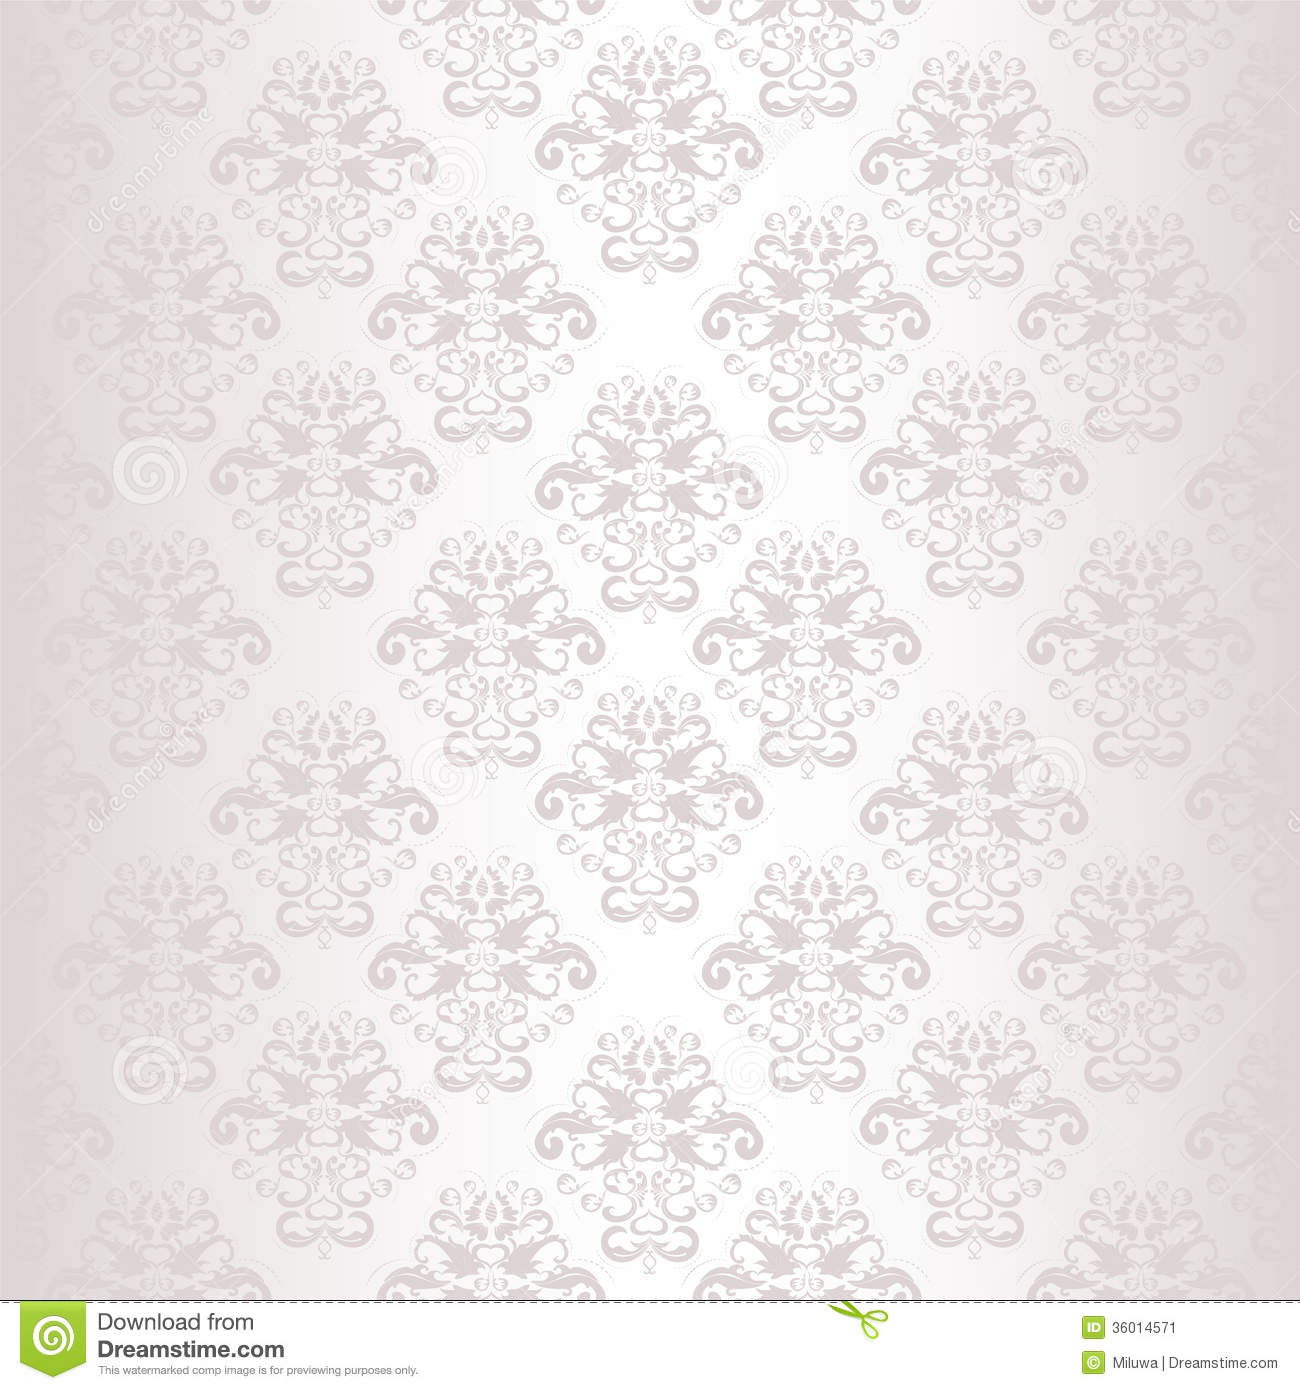 Black And White Gothic Wallpaper Luxury Wallpaper Stock Image Image 36014571